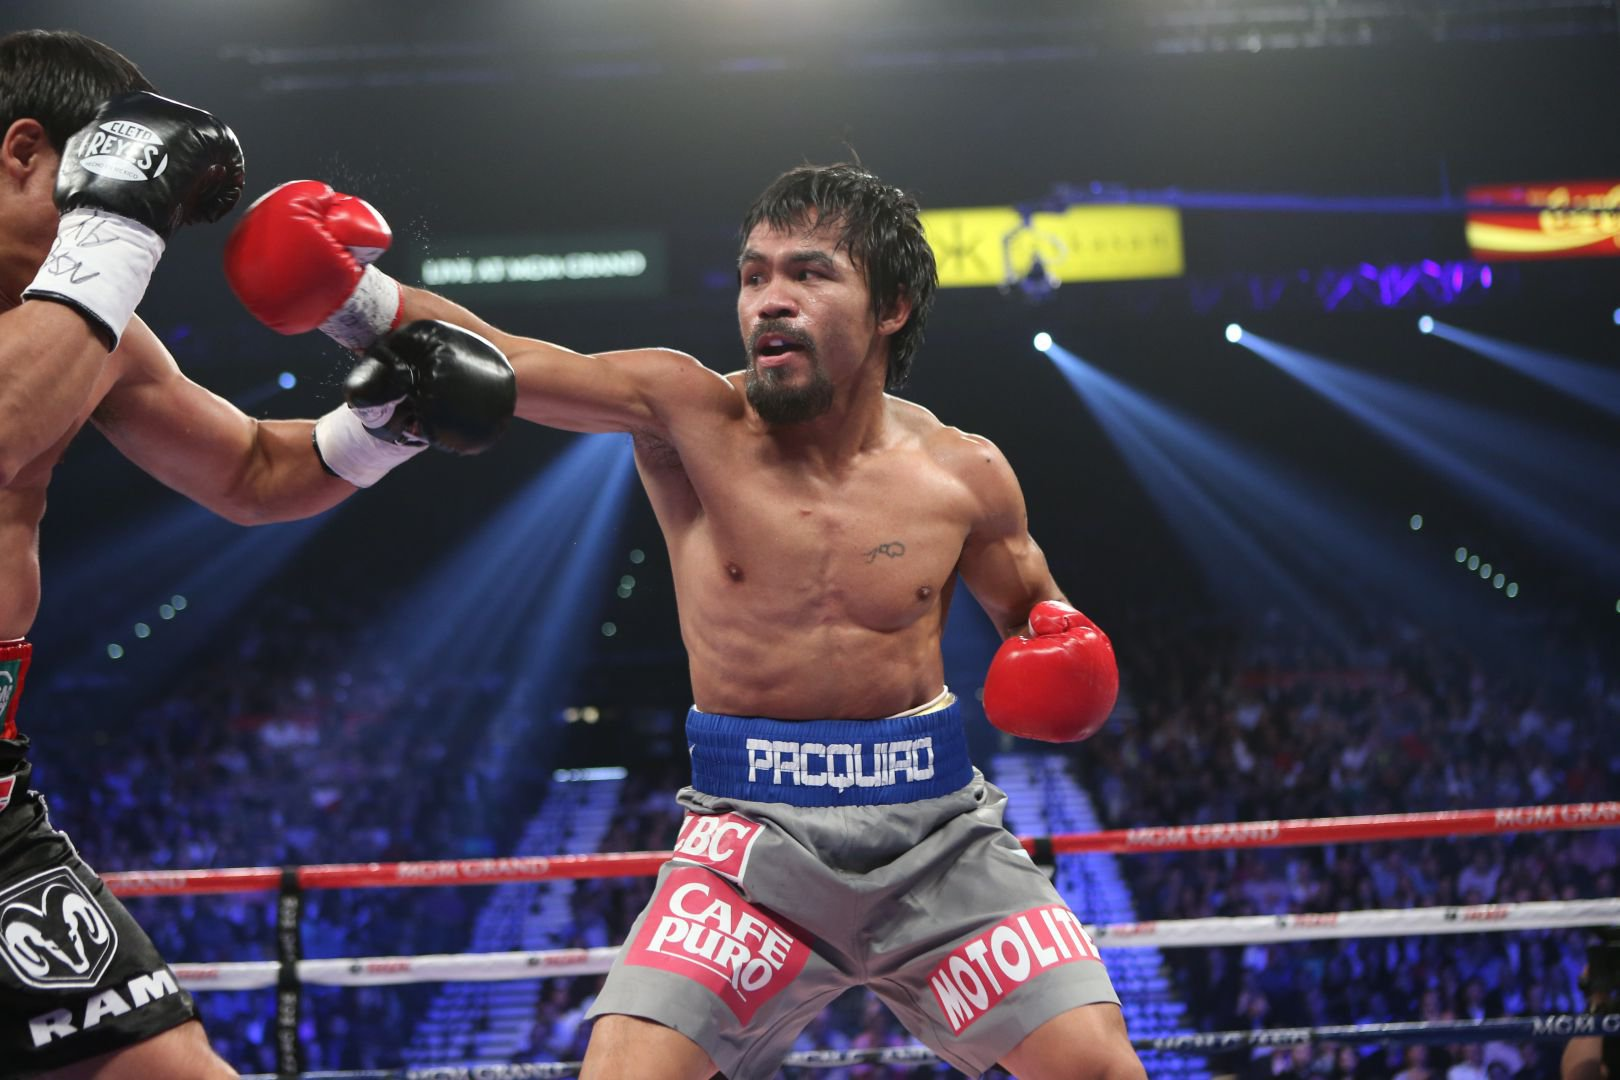 Pacquiao_-_Action_1.JPG